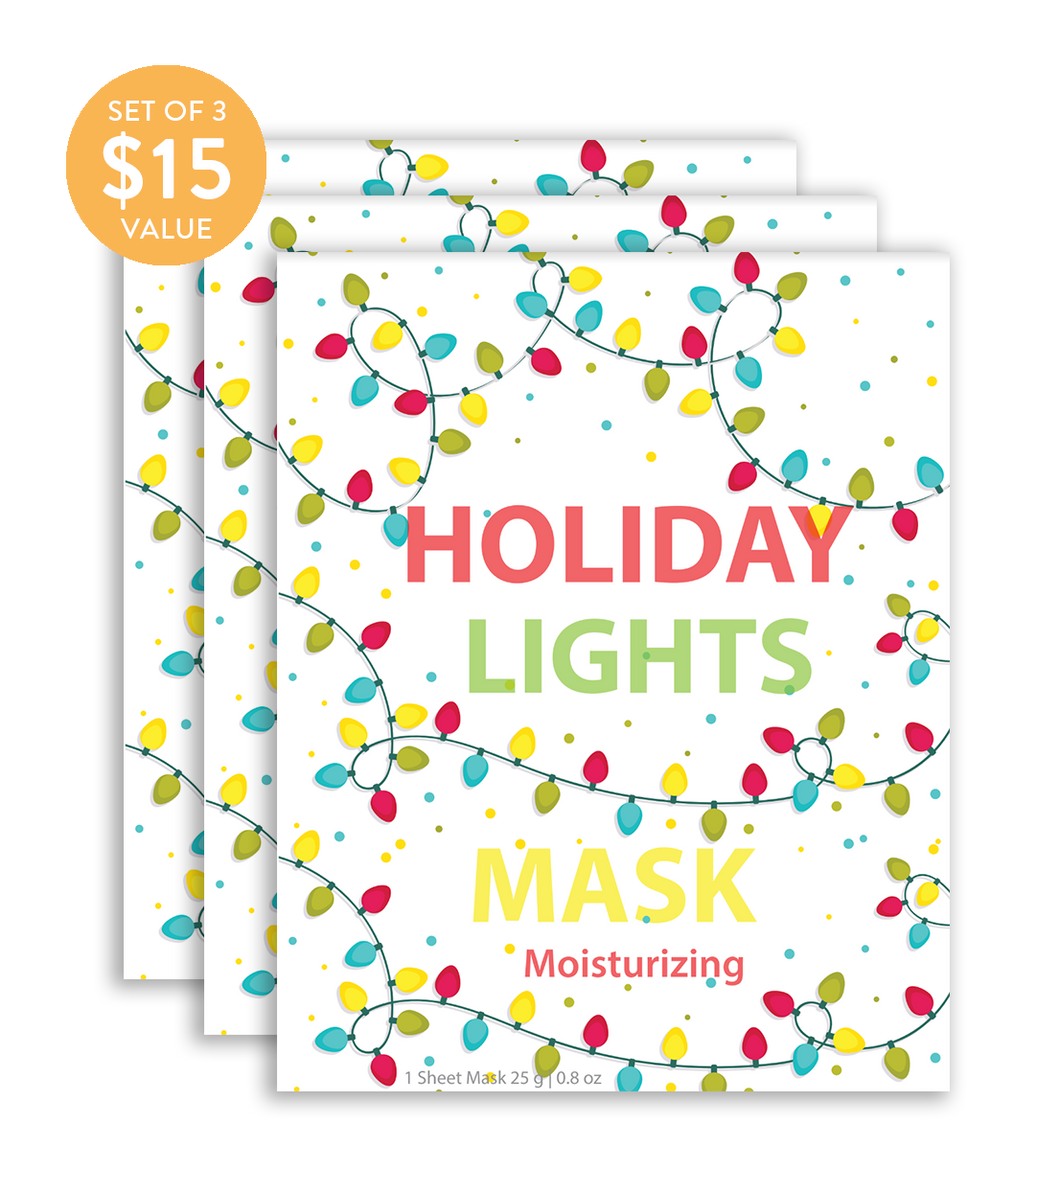 Holiday Lights Mask (Set of 3) - SkincarePharm